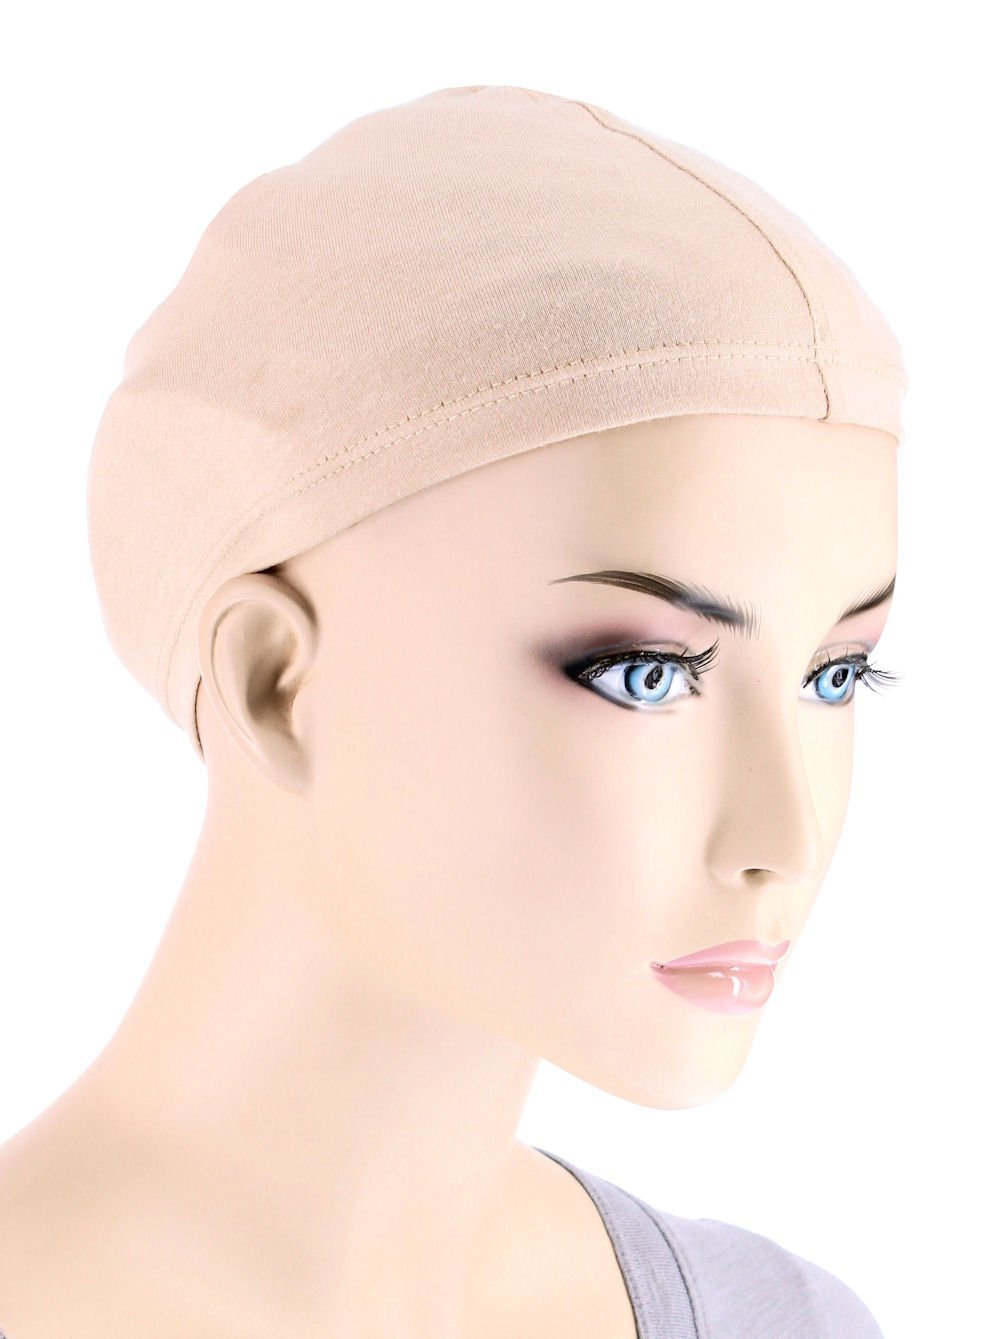 Bamboo Wig Liner Cap in Beige 2 pc Pack for Women with Cancer, Chemo, Hair Loss